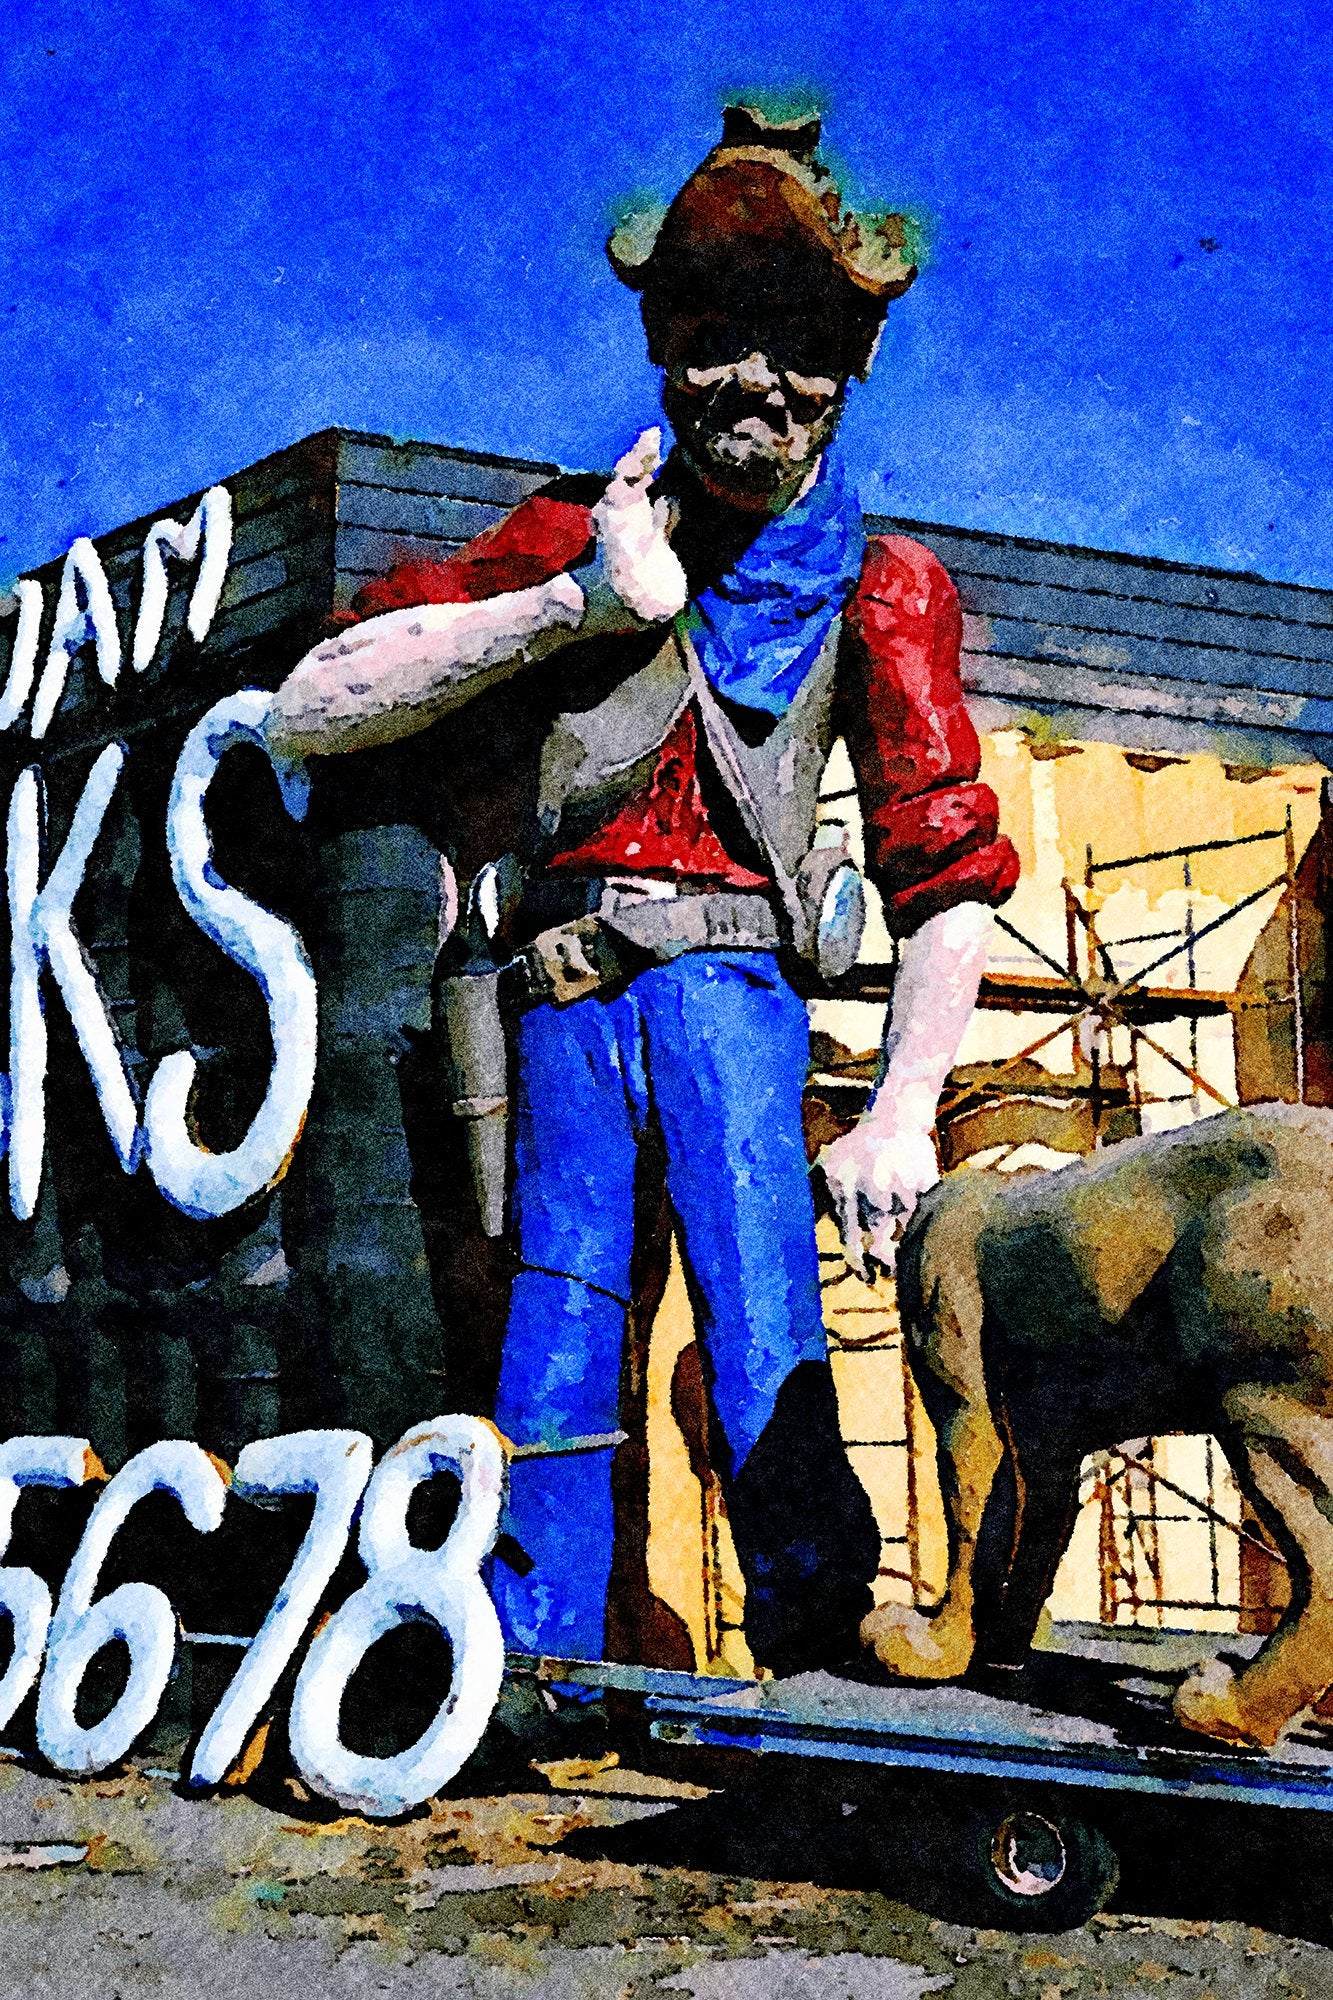 Spray Foam Trucks Prospector Statue and Sign, Frontage Road, Albany, Oregon, Reworked, Series 1